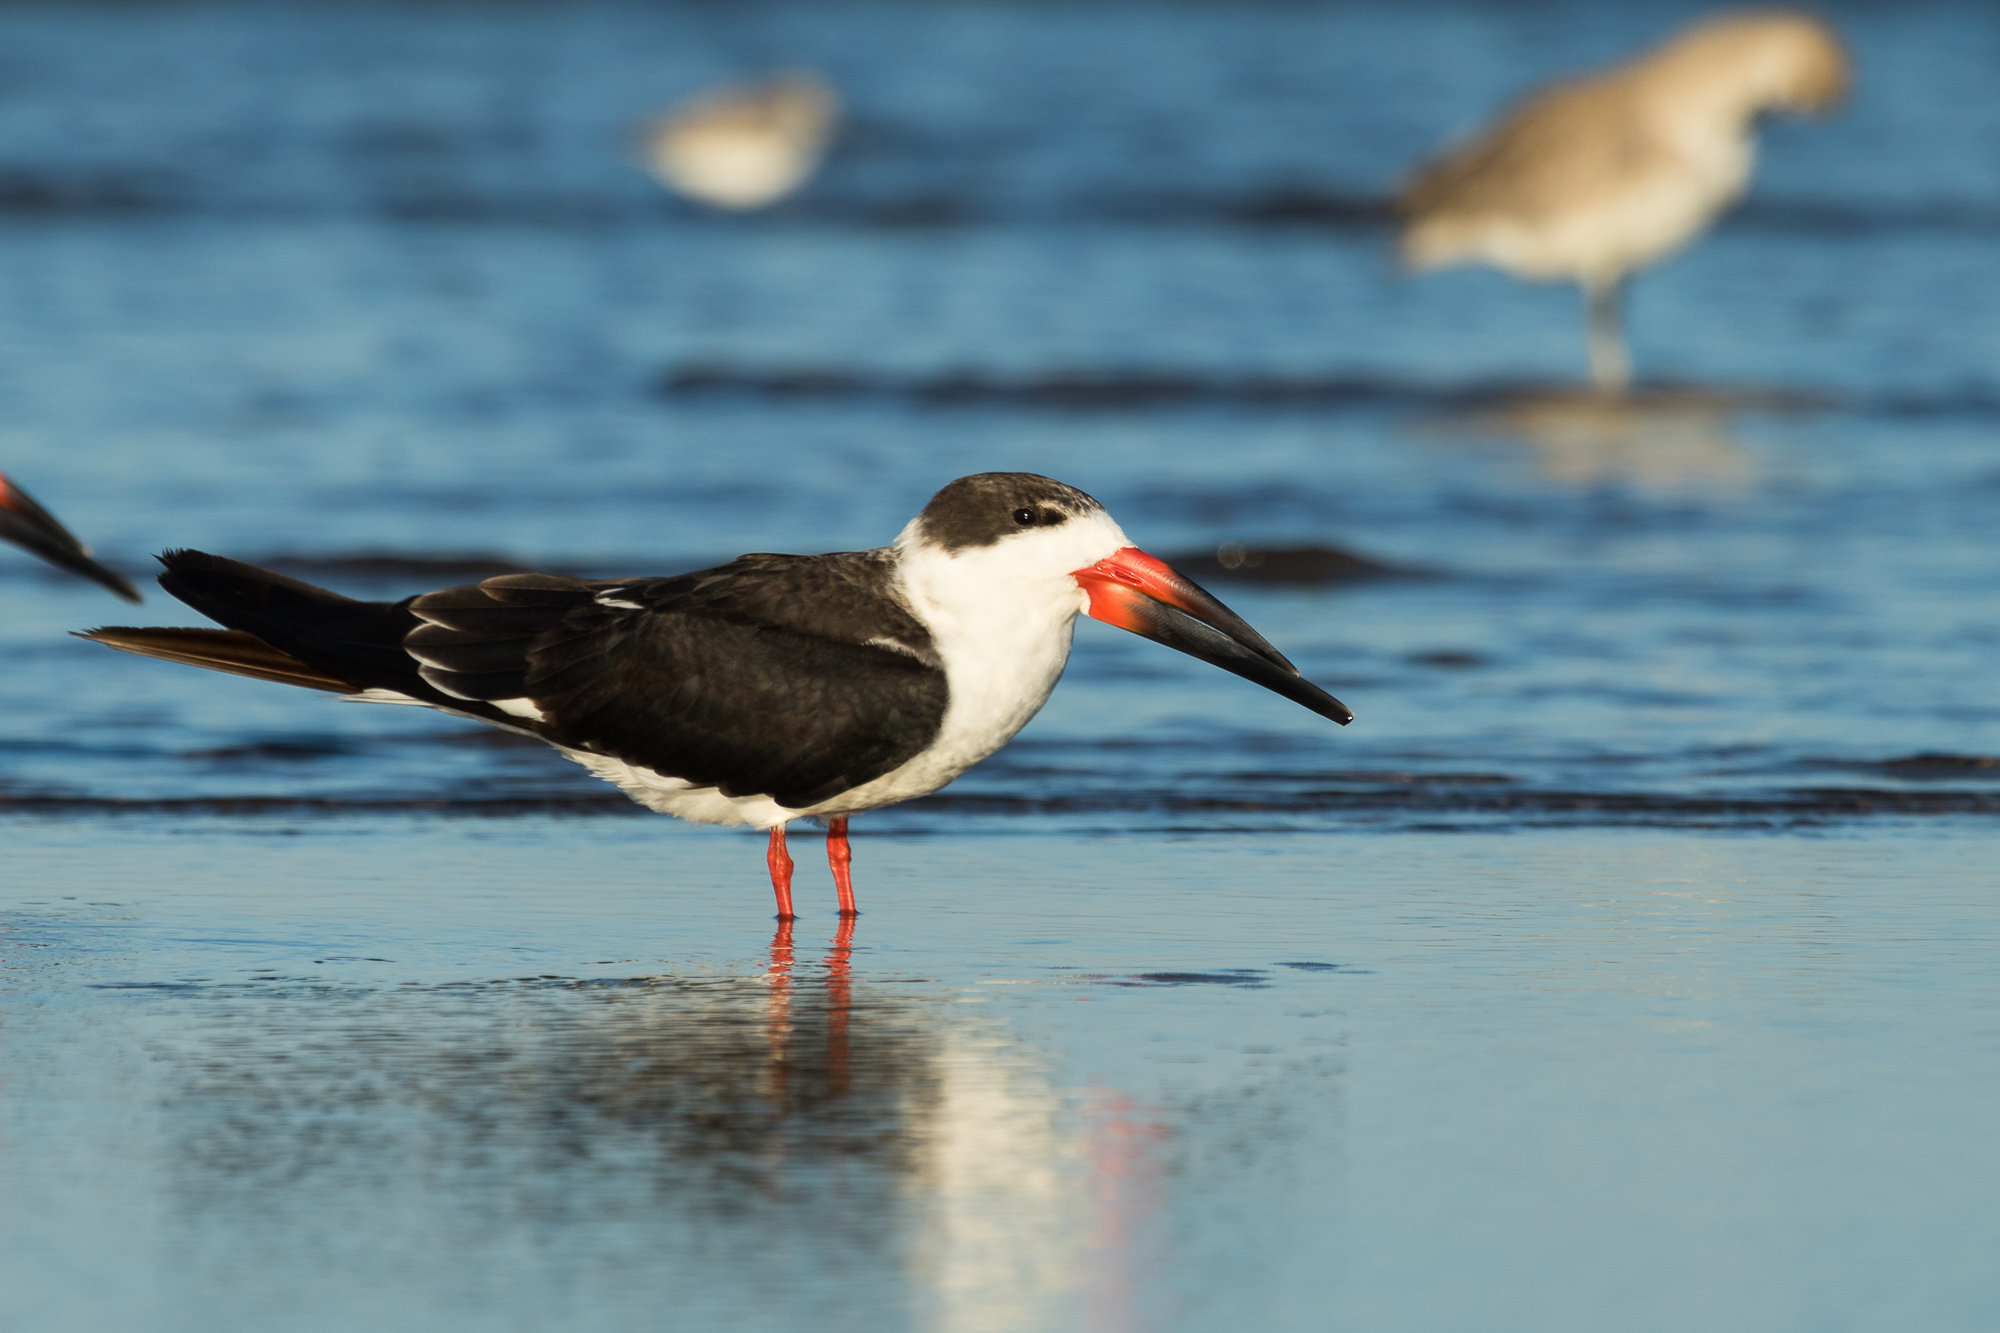 A black skimmer stands in shallow water along the shore, Puerto Vallarta, Mexico